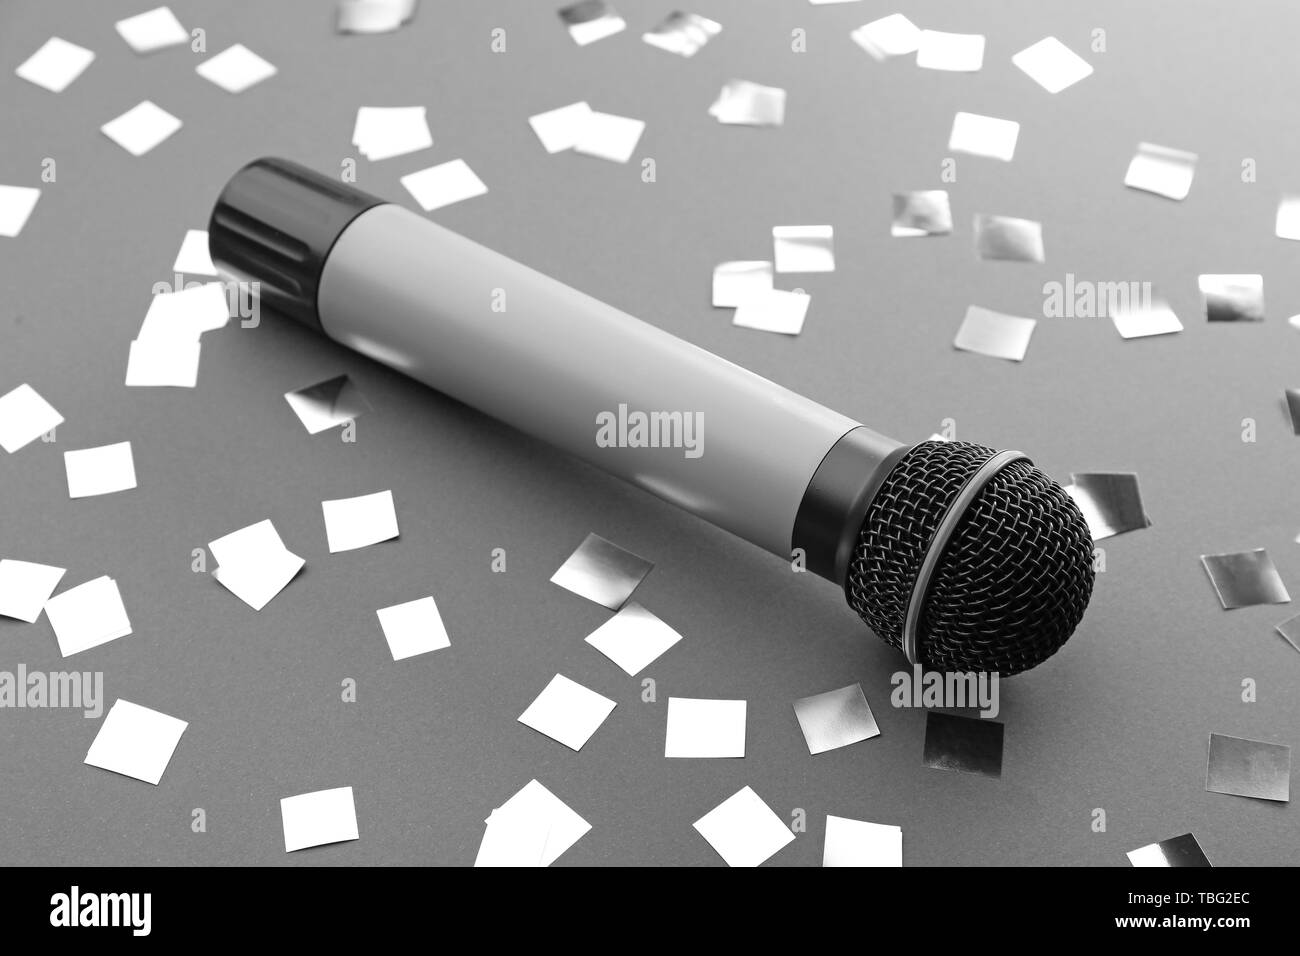 Microphone and confetti on grey background - Stock Image